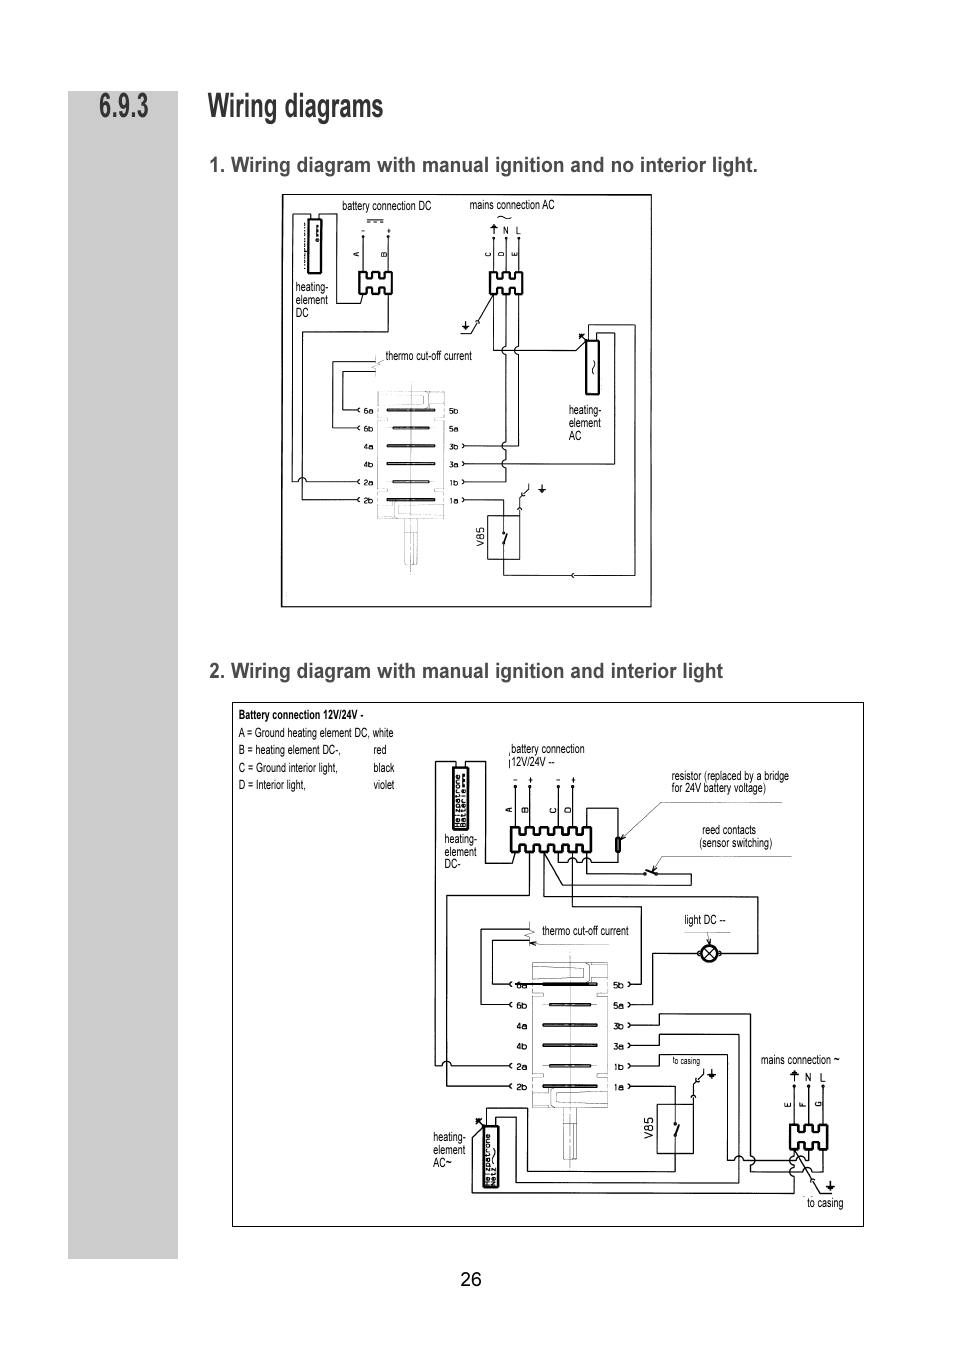 Wiring Diagrams Dometic Rm 6270l User Manual Page 26 28 24v Diagram